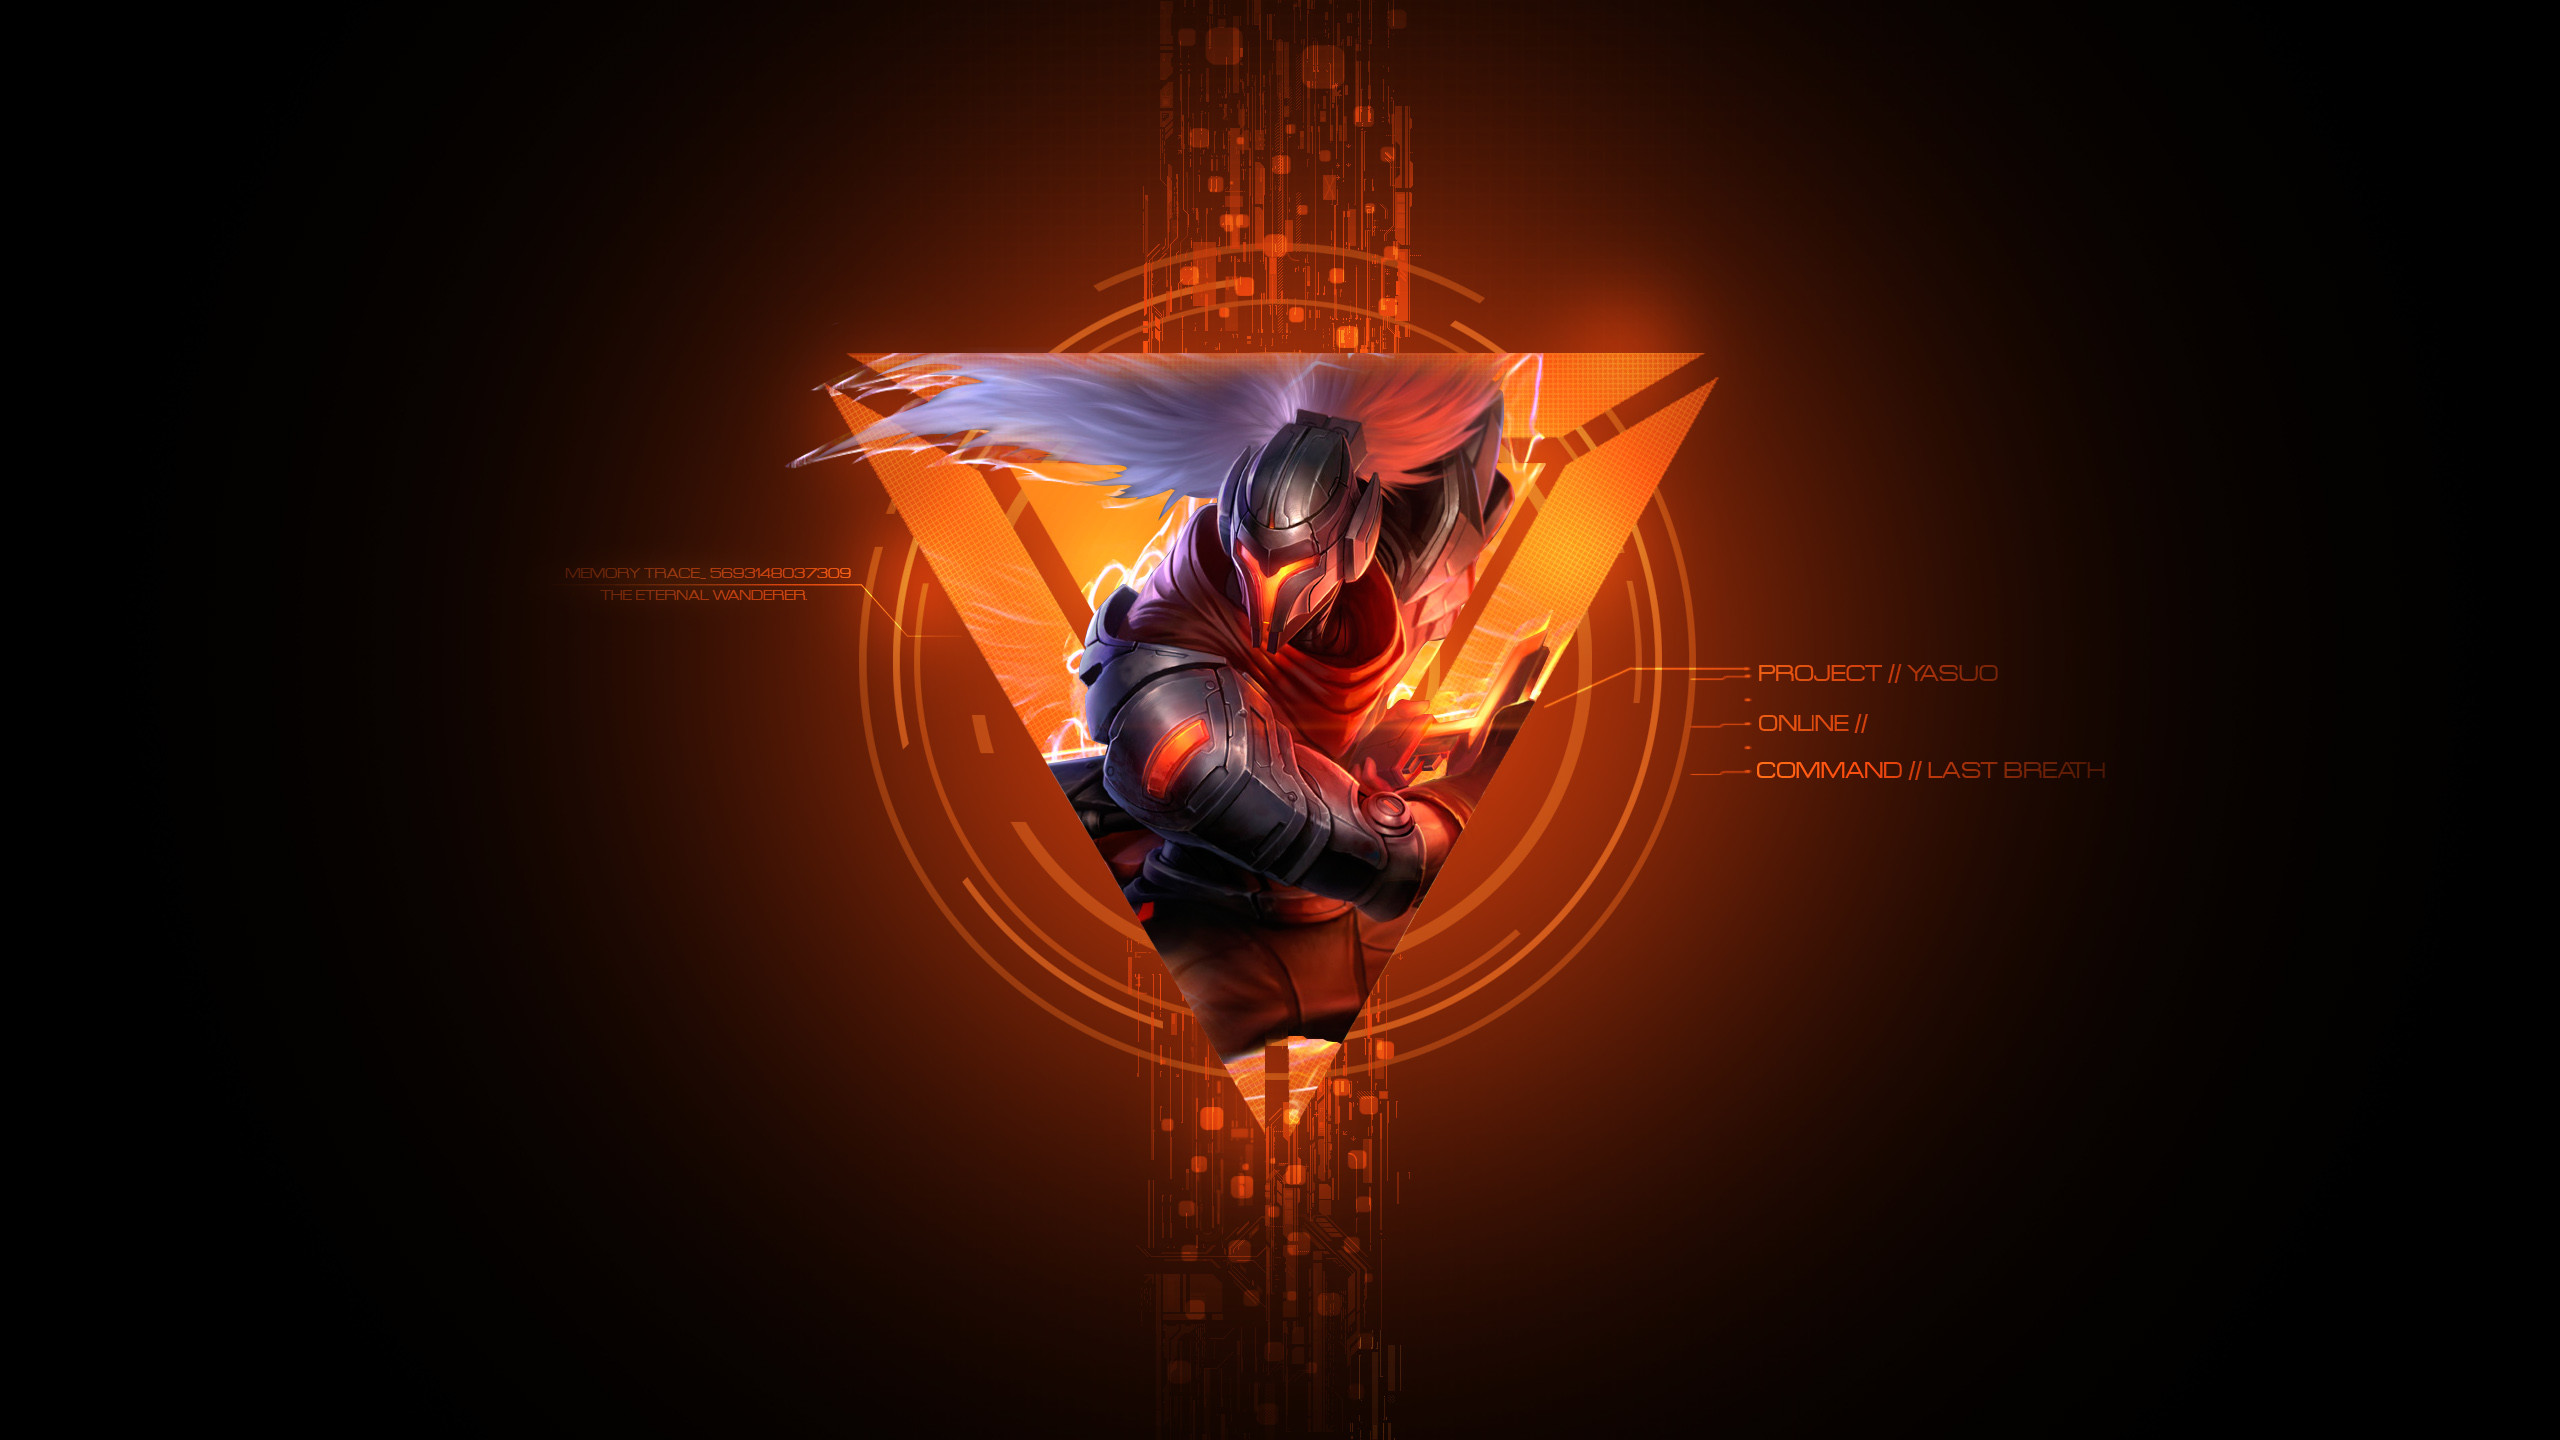 Project Yasuo Wallpaper Hd 82 Images